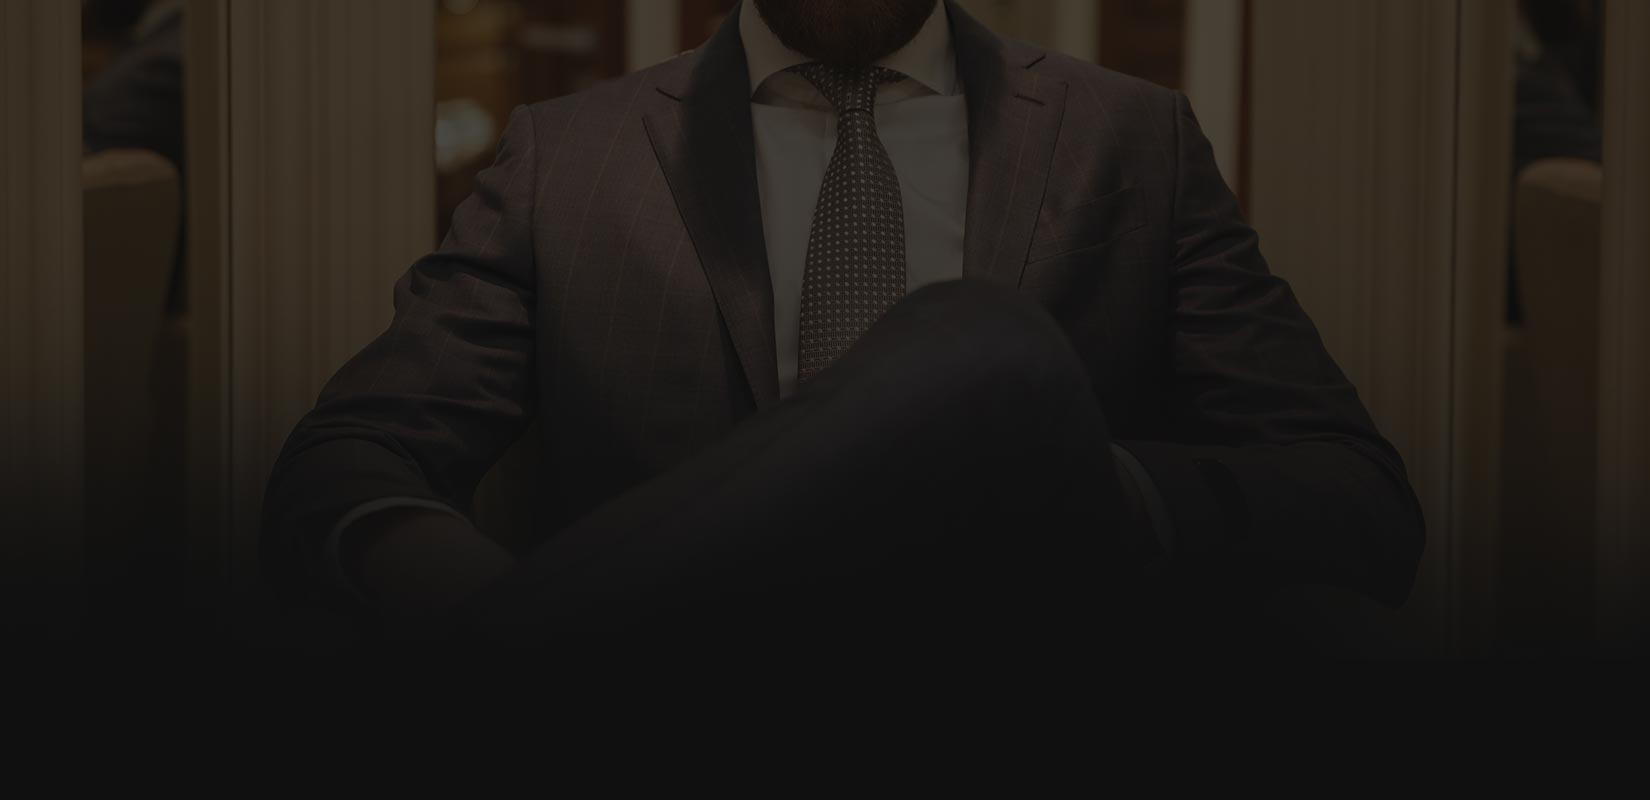 Online betting the apprentice stopforumspam matched betting